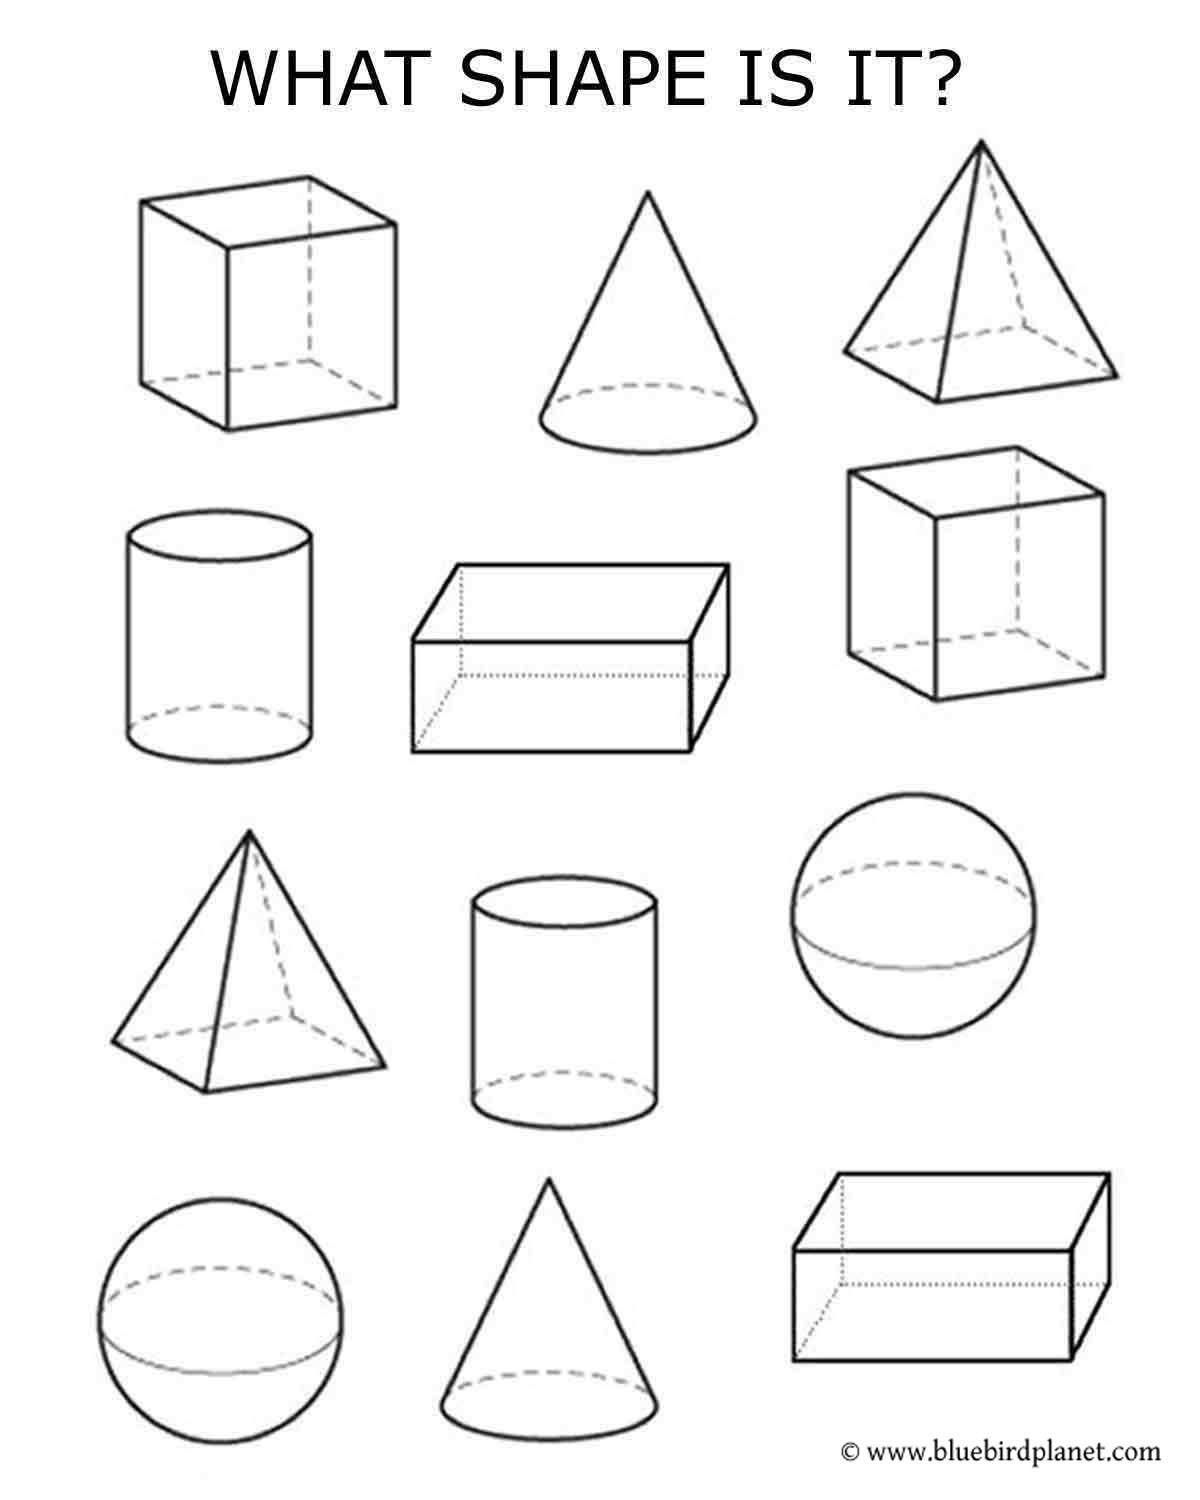 Polygon Worksheets 3rd Grade Free Printable Worksheets for Preschool Kindergarten 1st